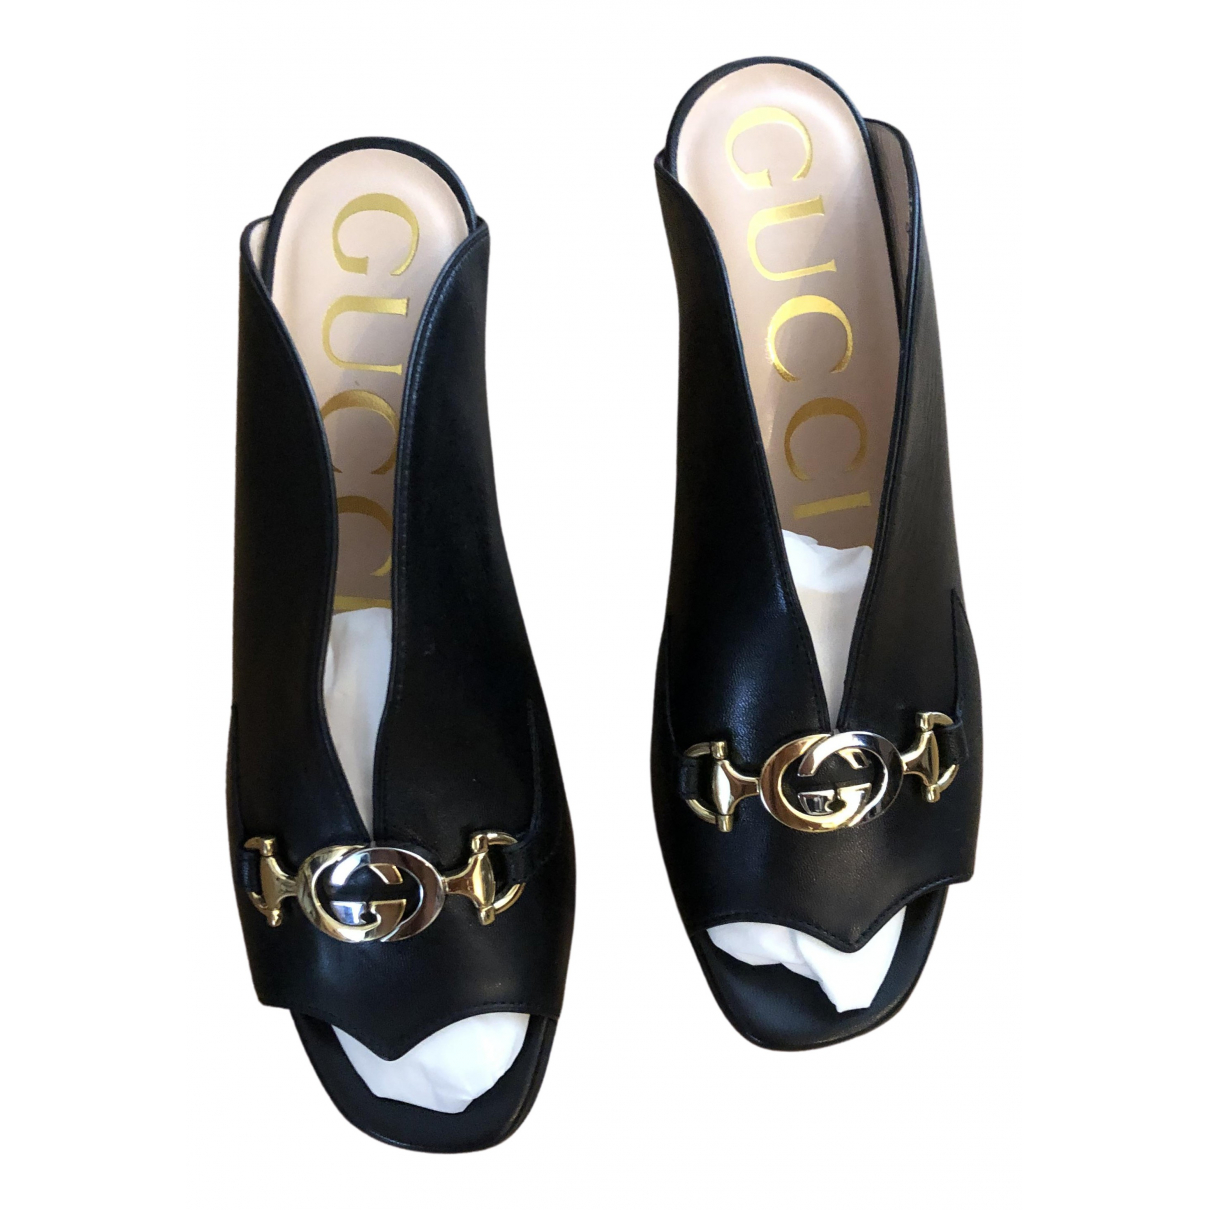 Gucci \N Black Leather Mules & Clogs for Women 36.5 EU